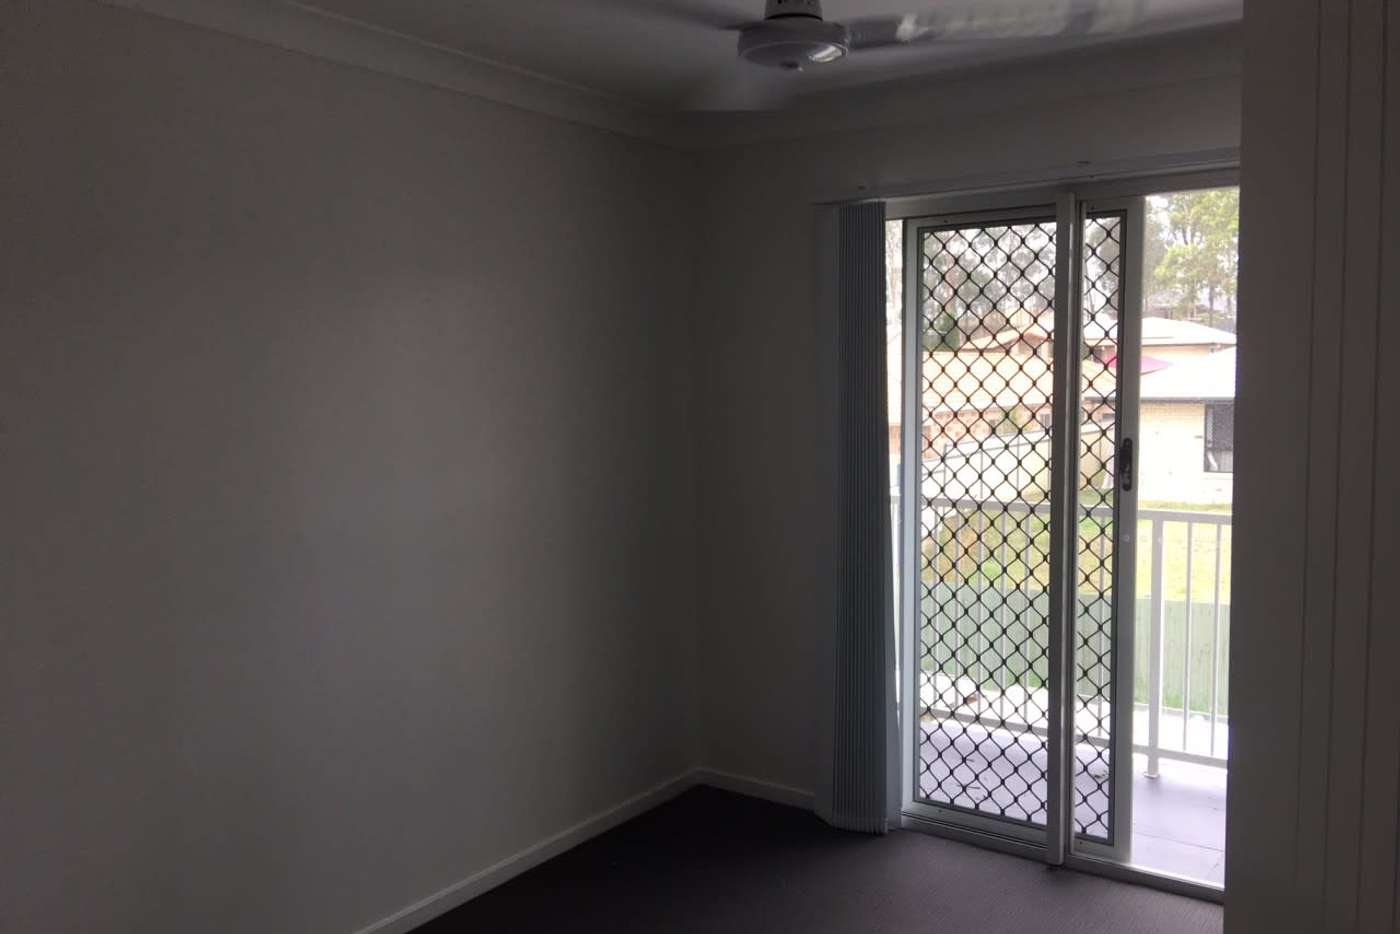 Sixth view of Homely townhouse listing, 6/3 Broadleaf Parade, Redbank QLD 4301